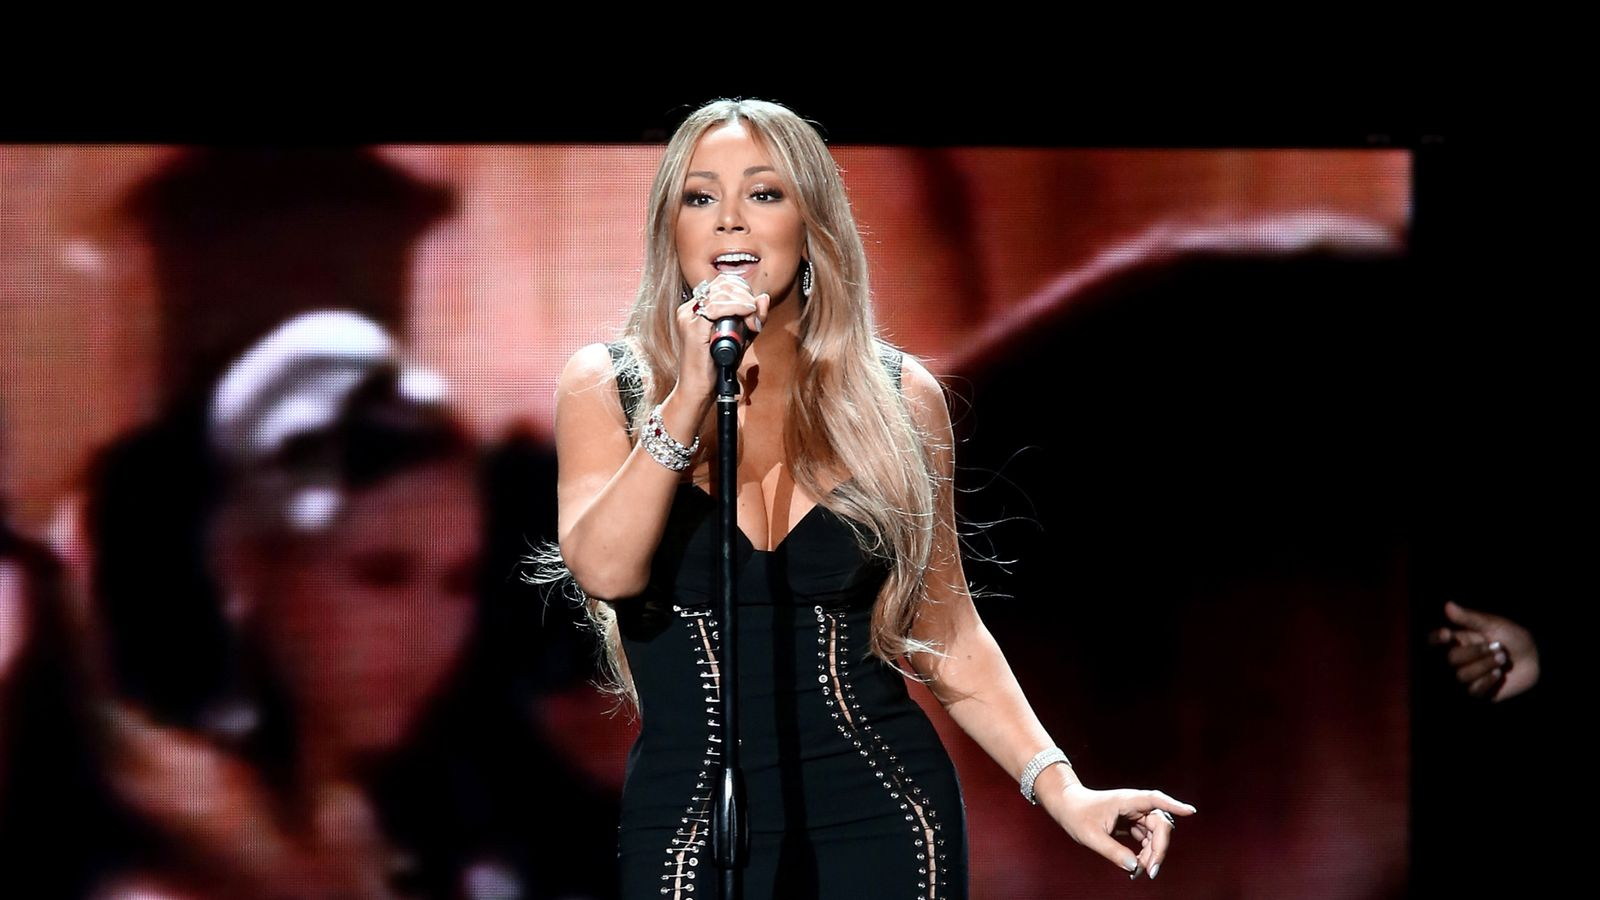 Mariah Carey no longer 'in denial' over bipolar disorder